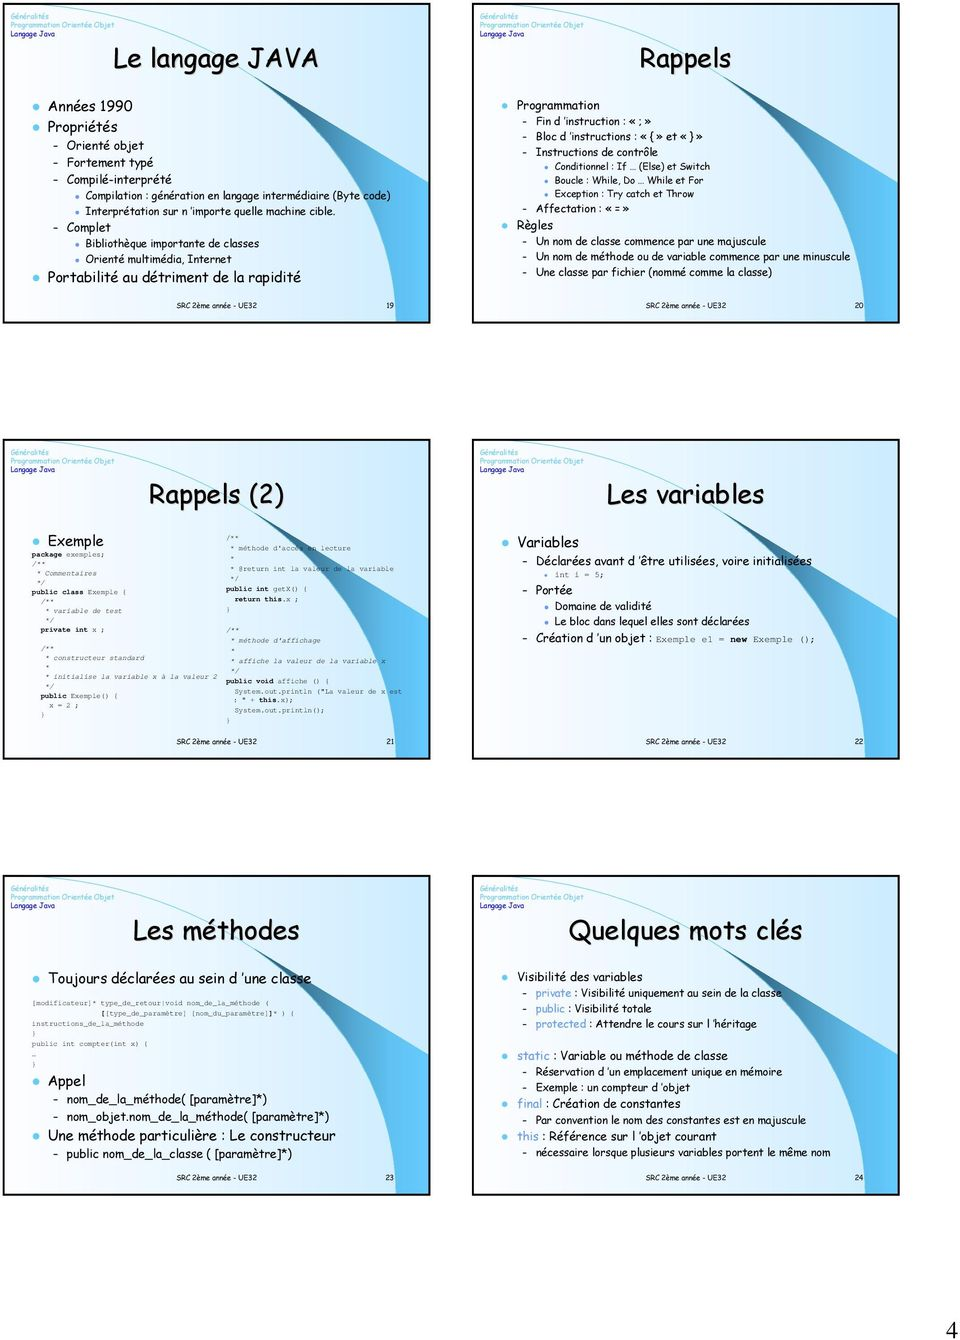 Complet Bibliothèque importante de classes Orienté multimédia, Internet Portabilité au détriment de la rapidité Programmation Fin d instruction : «;» Bloc d instructions : «{» et Instructions de